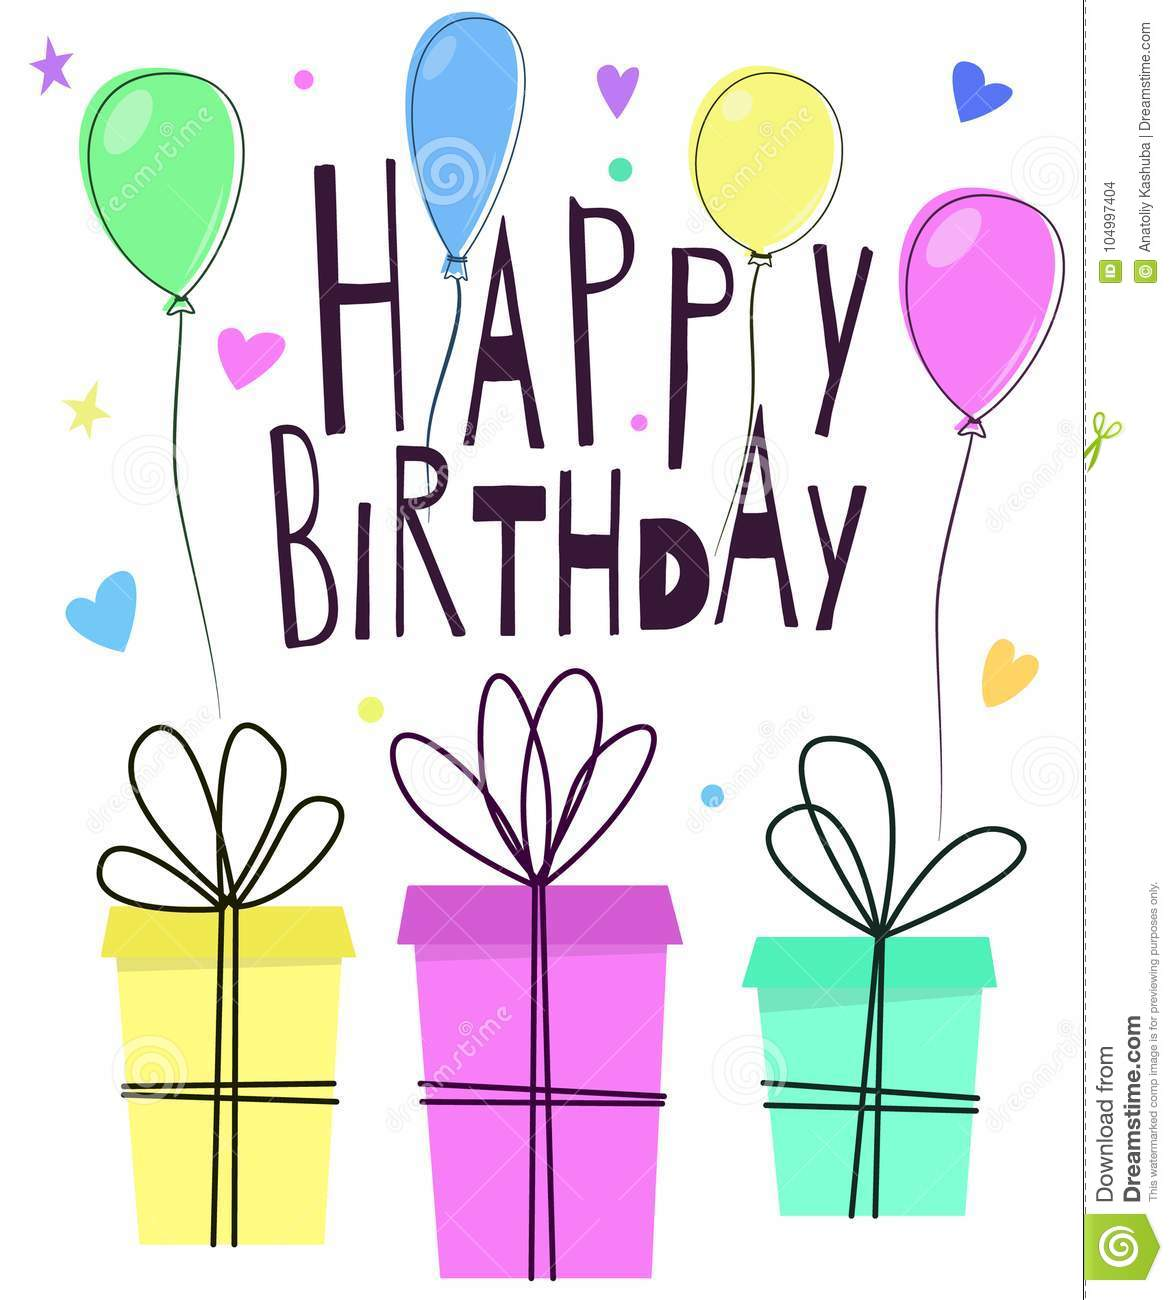 Cute Happy Birthday Greeting Card Design With Gift Boxes Inflated